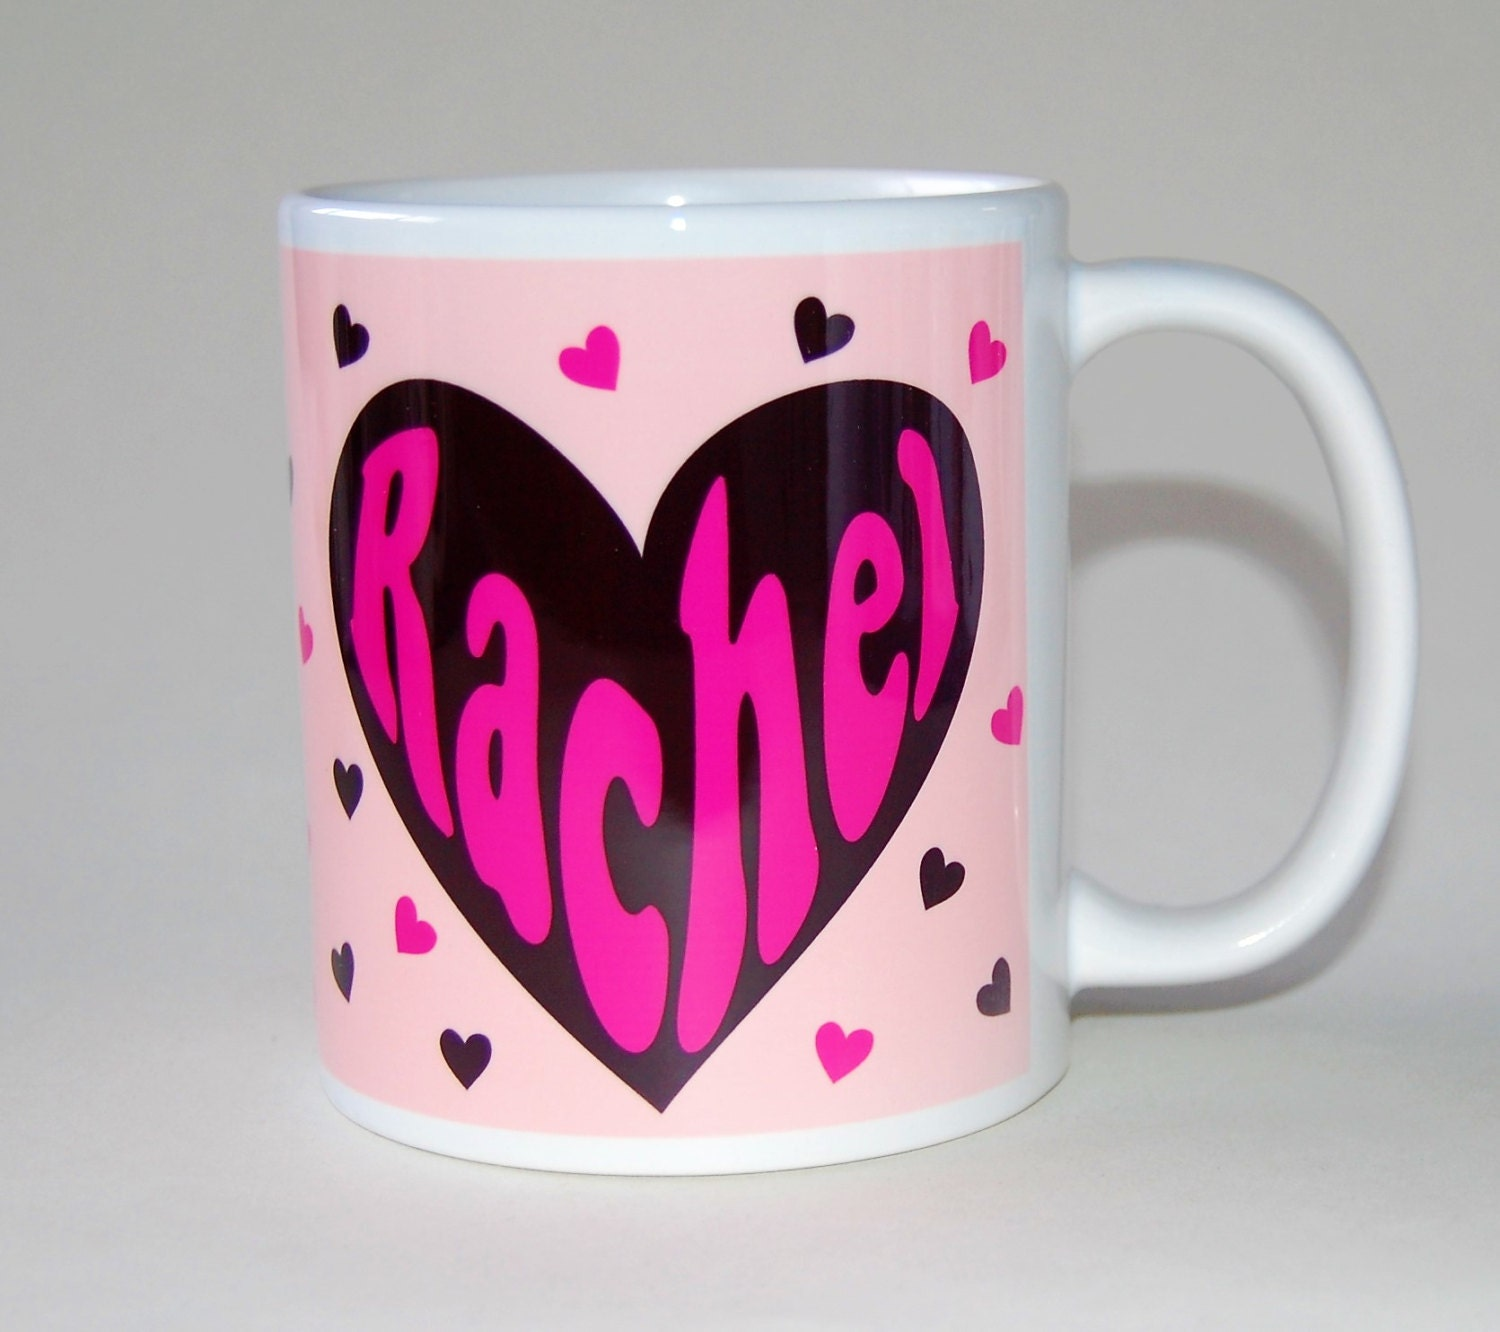 Personalised Name Mug Pink Hearts Birthday Gift For Her Customised